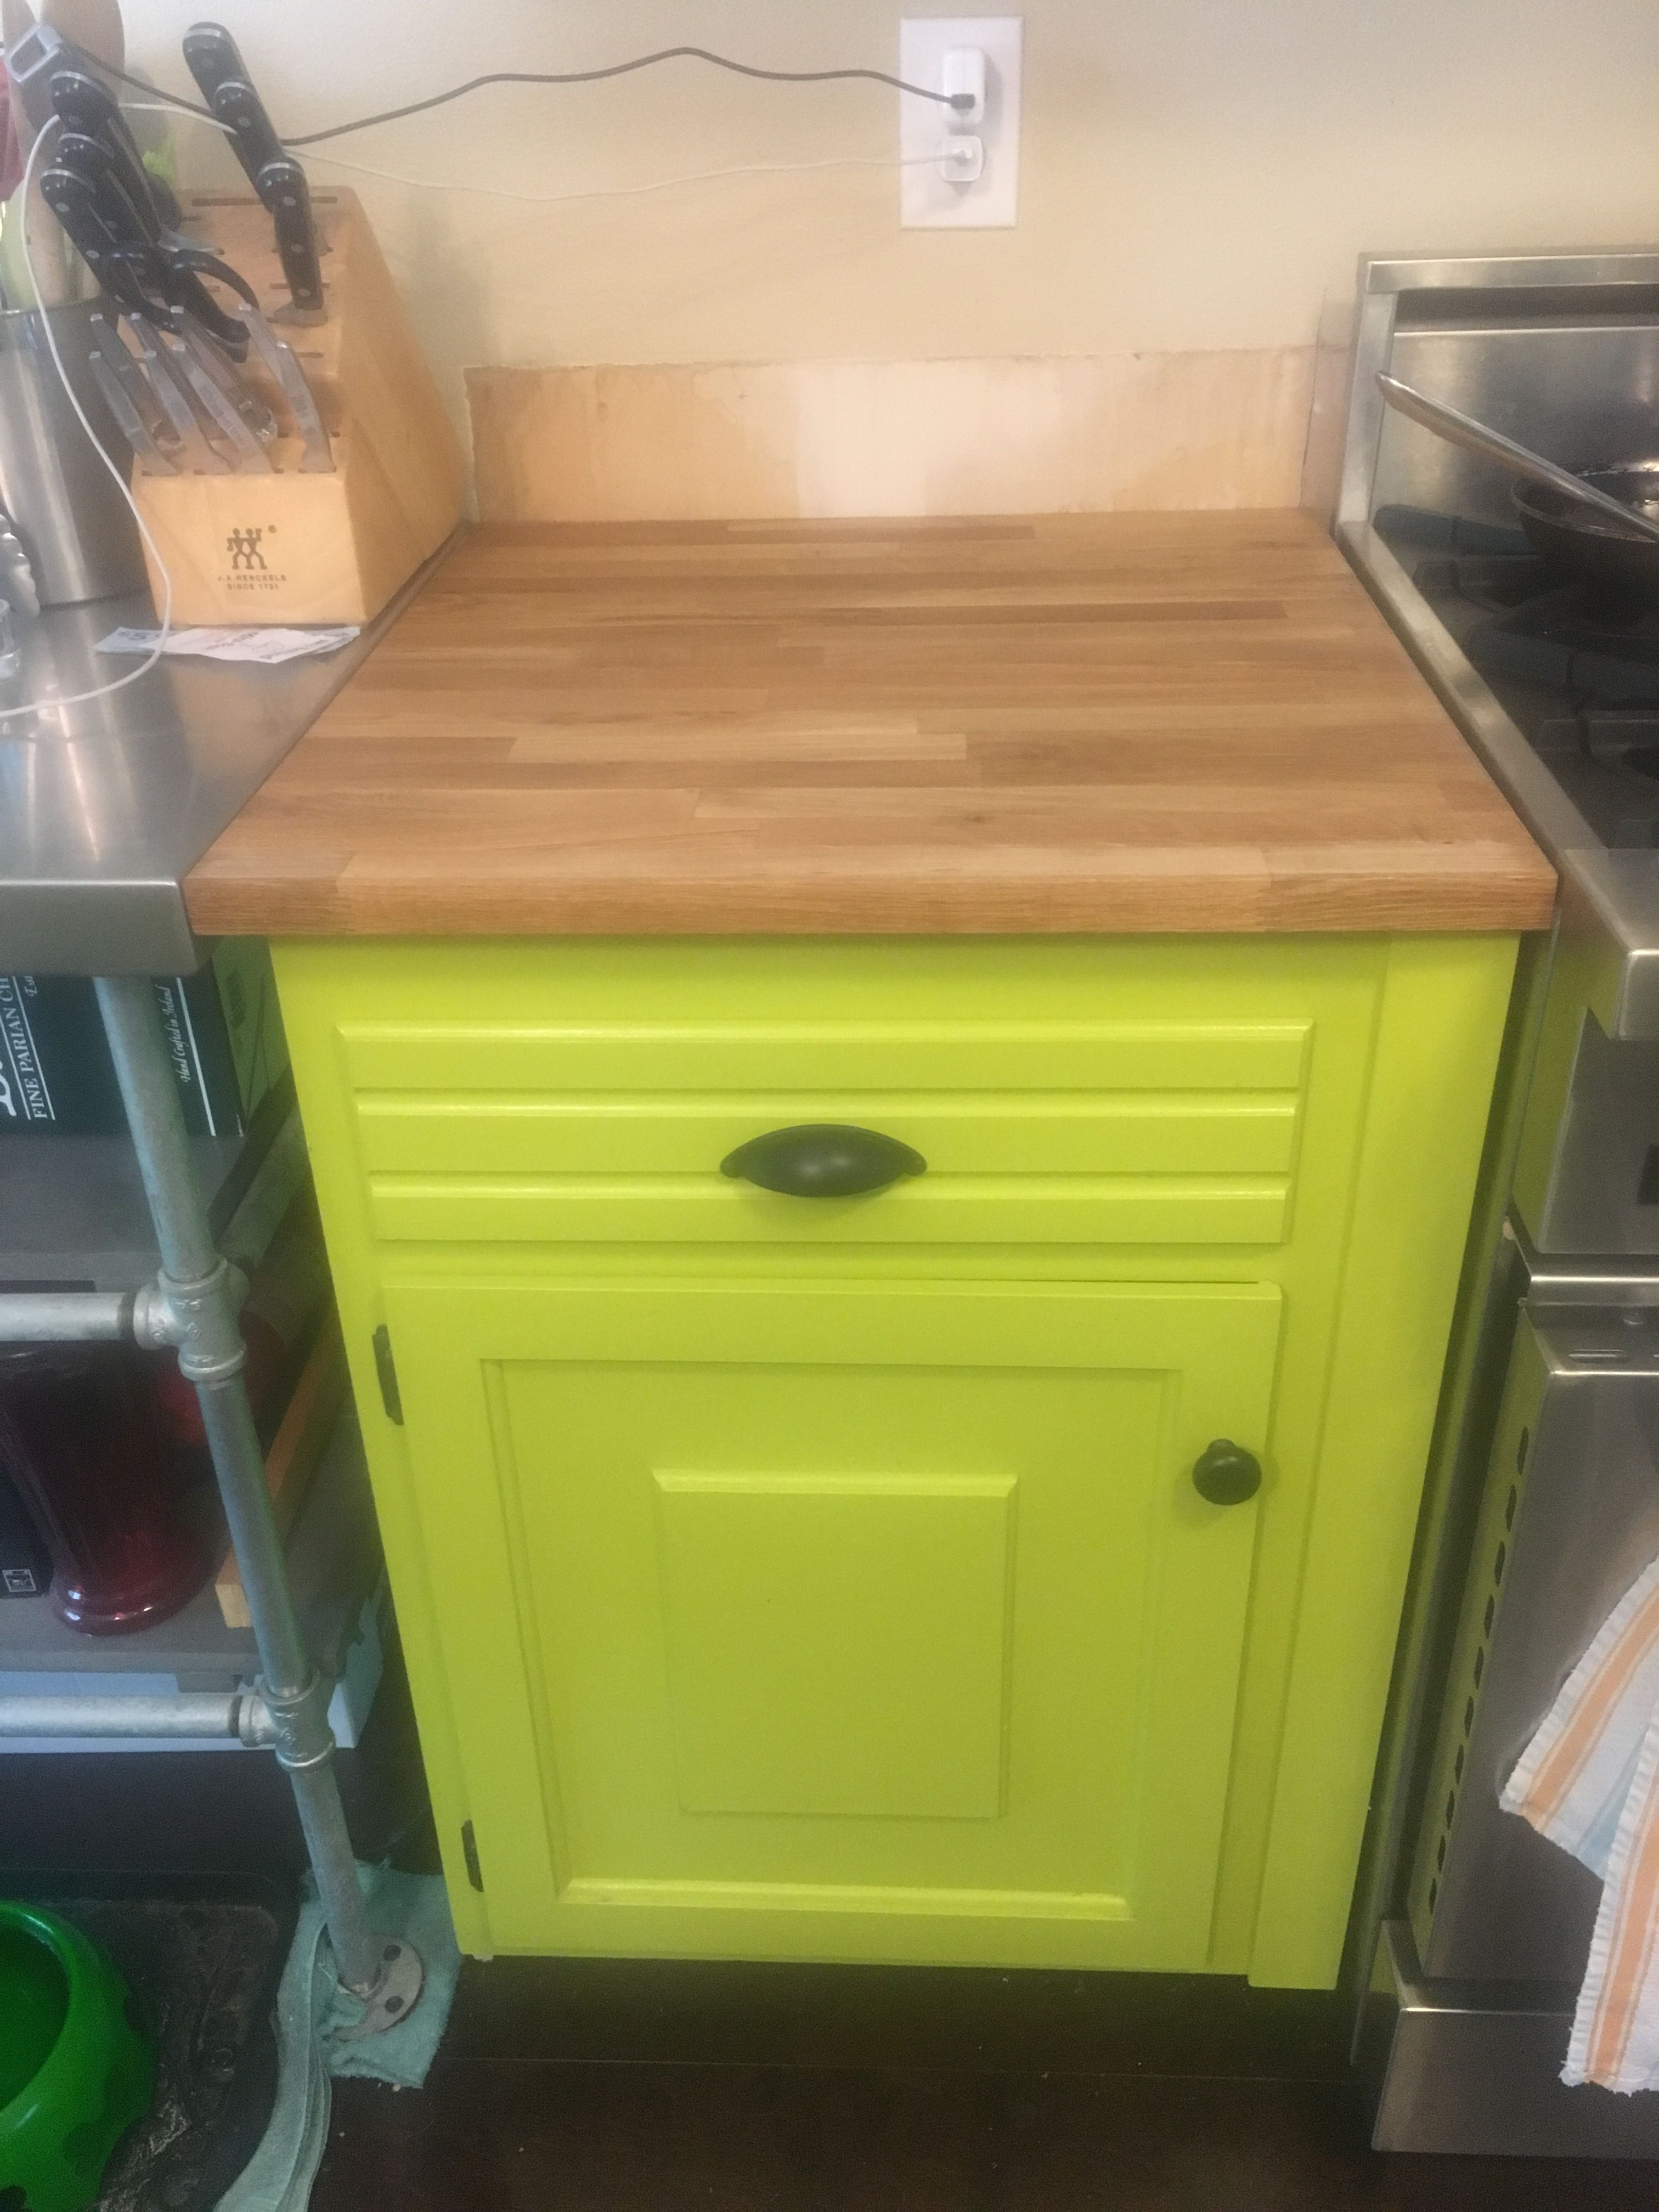 Ikea Hammarp Oak Countertops Barely Visible Is The Corner Of The